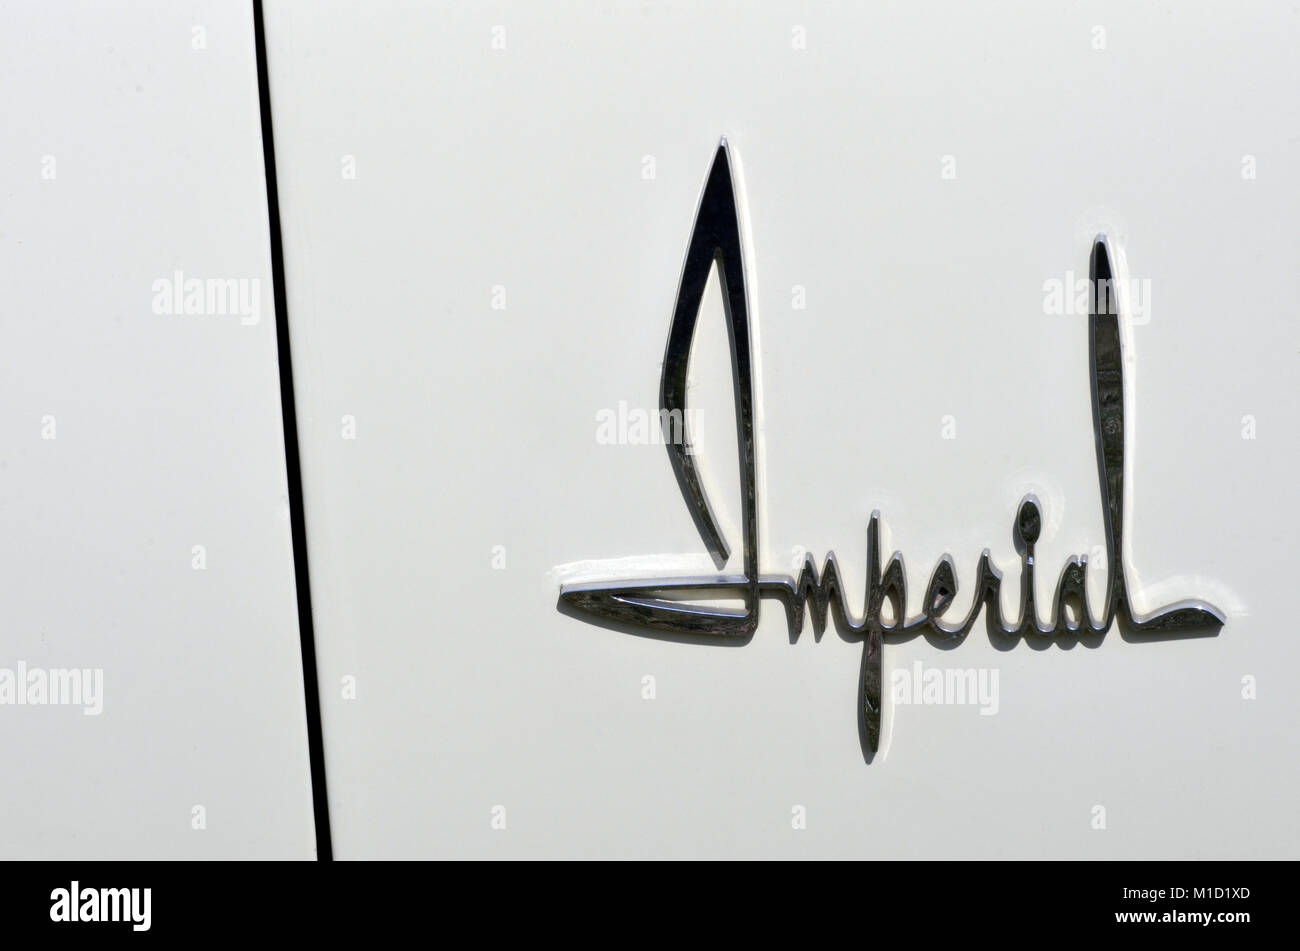 imperial car name badge - Stock Image